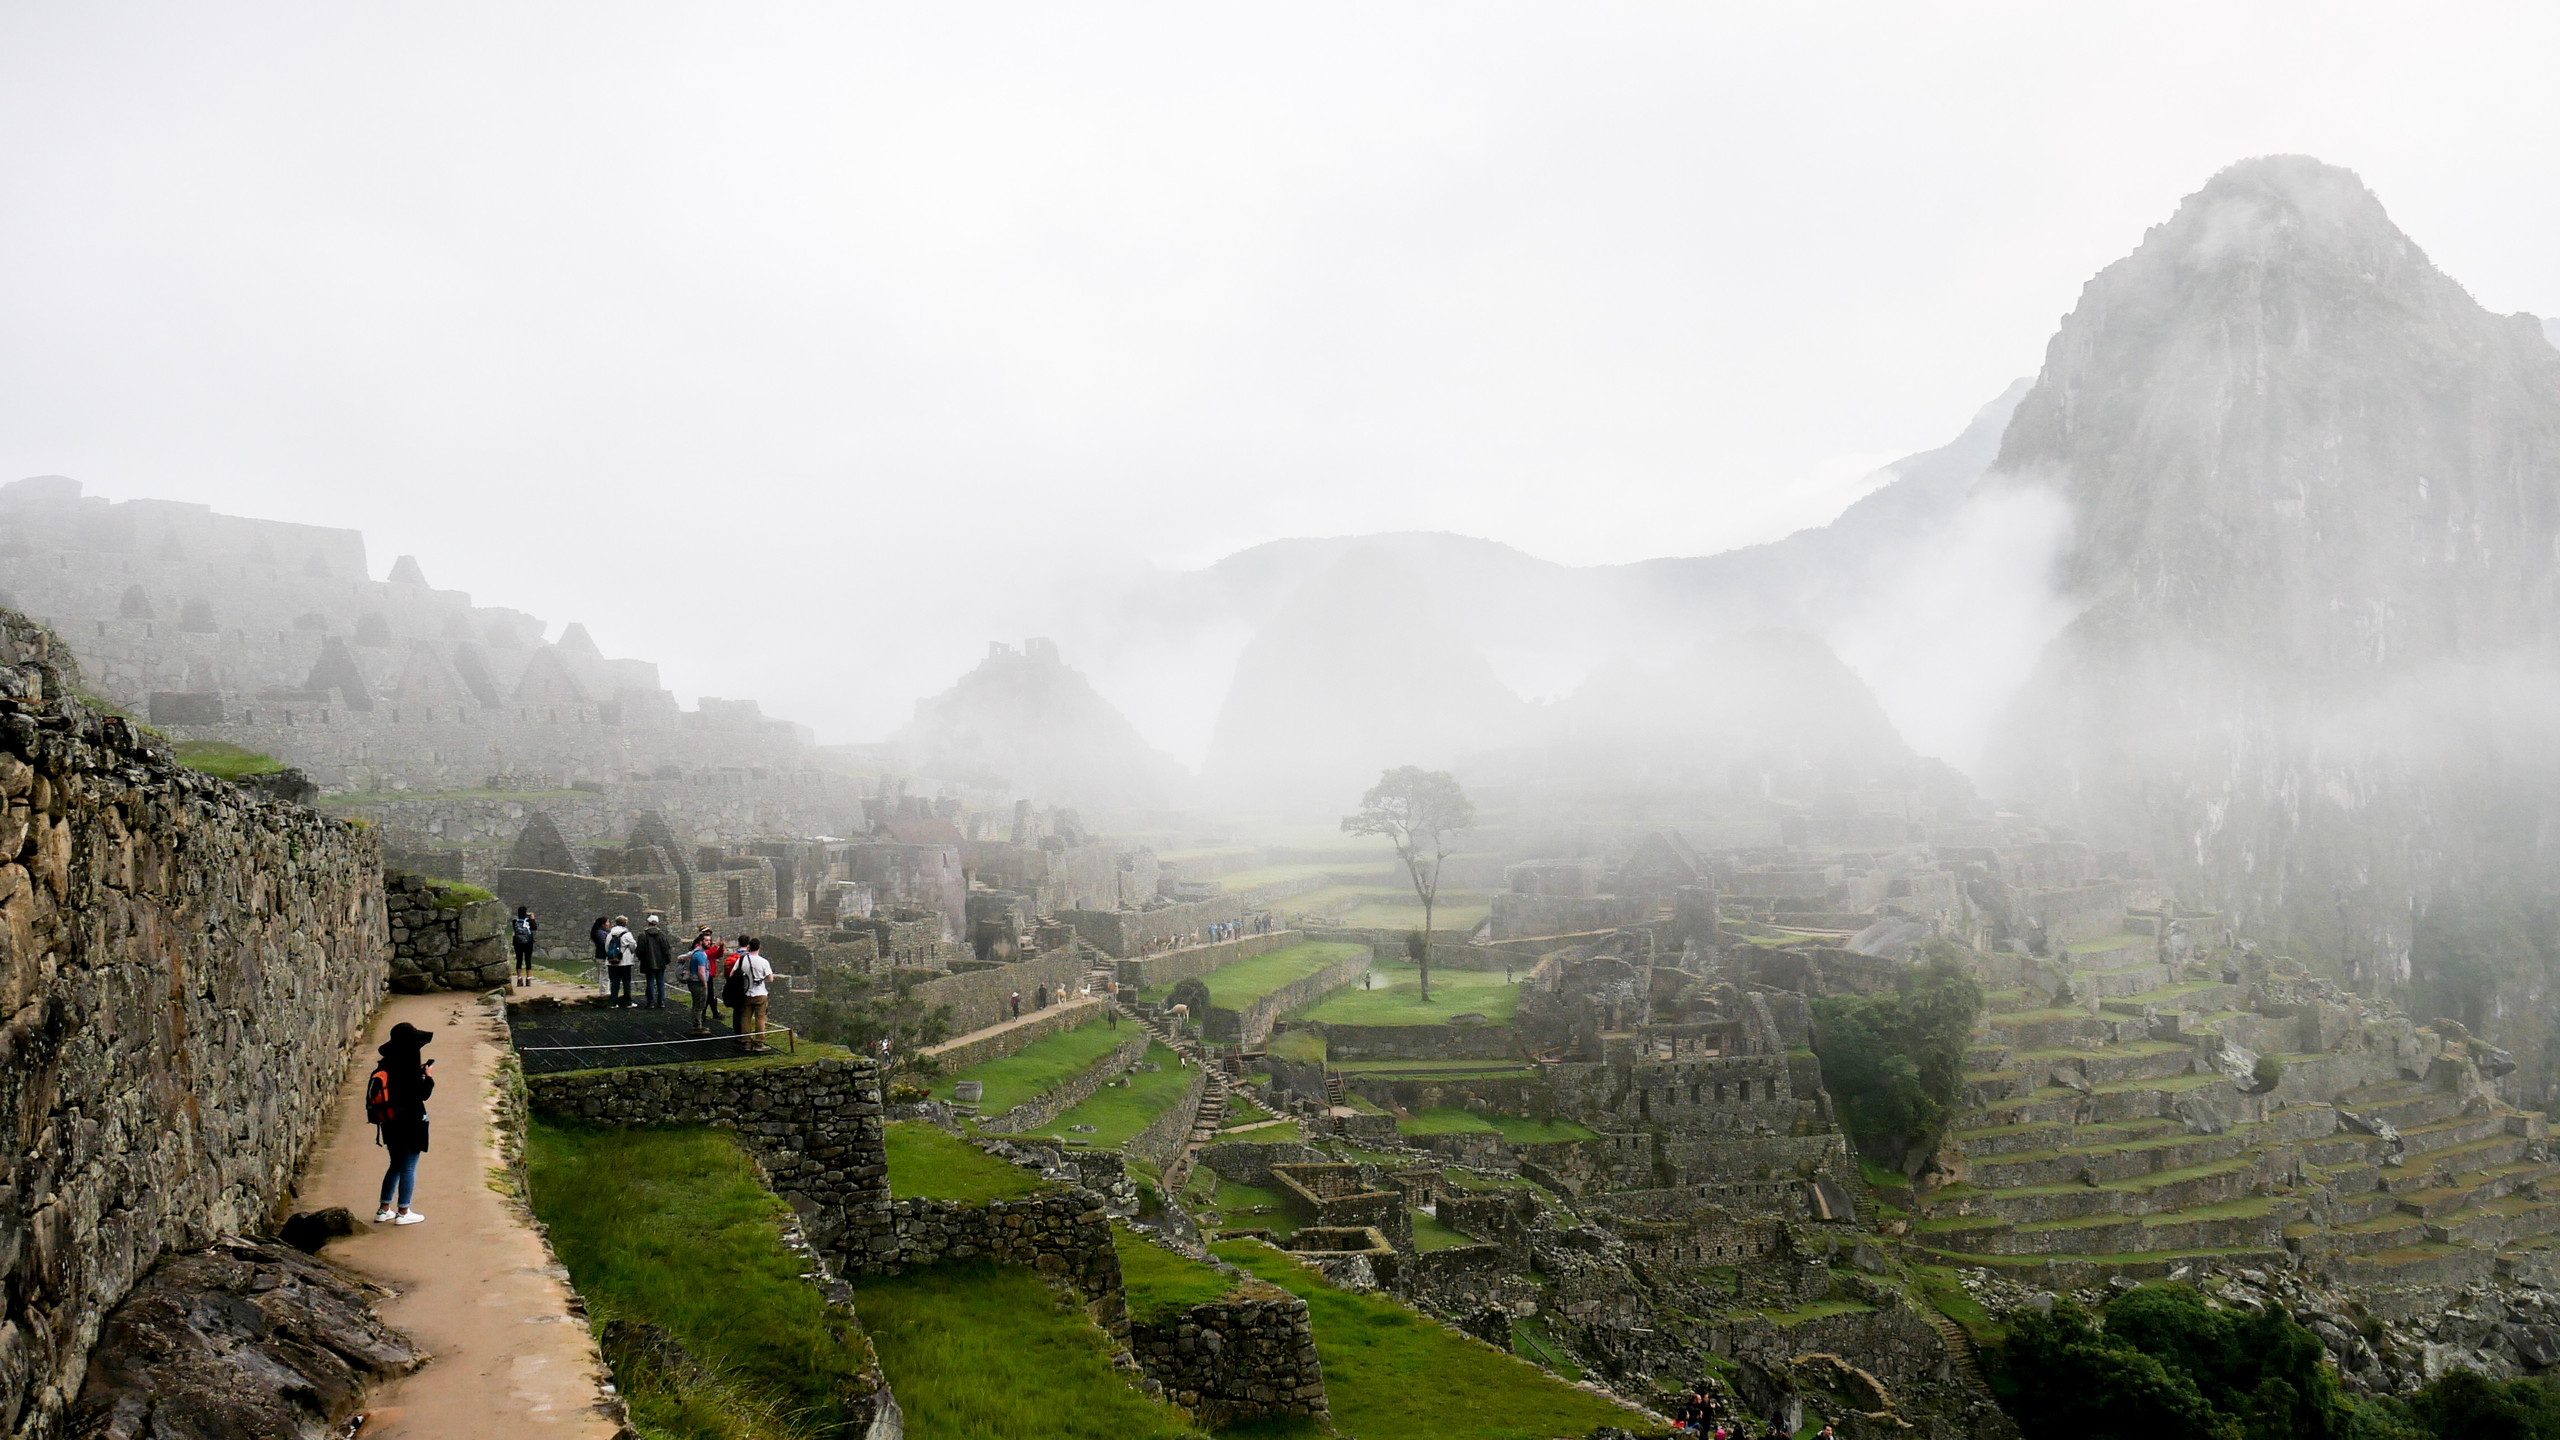 view of the Machu Picchu from the exit of the city